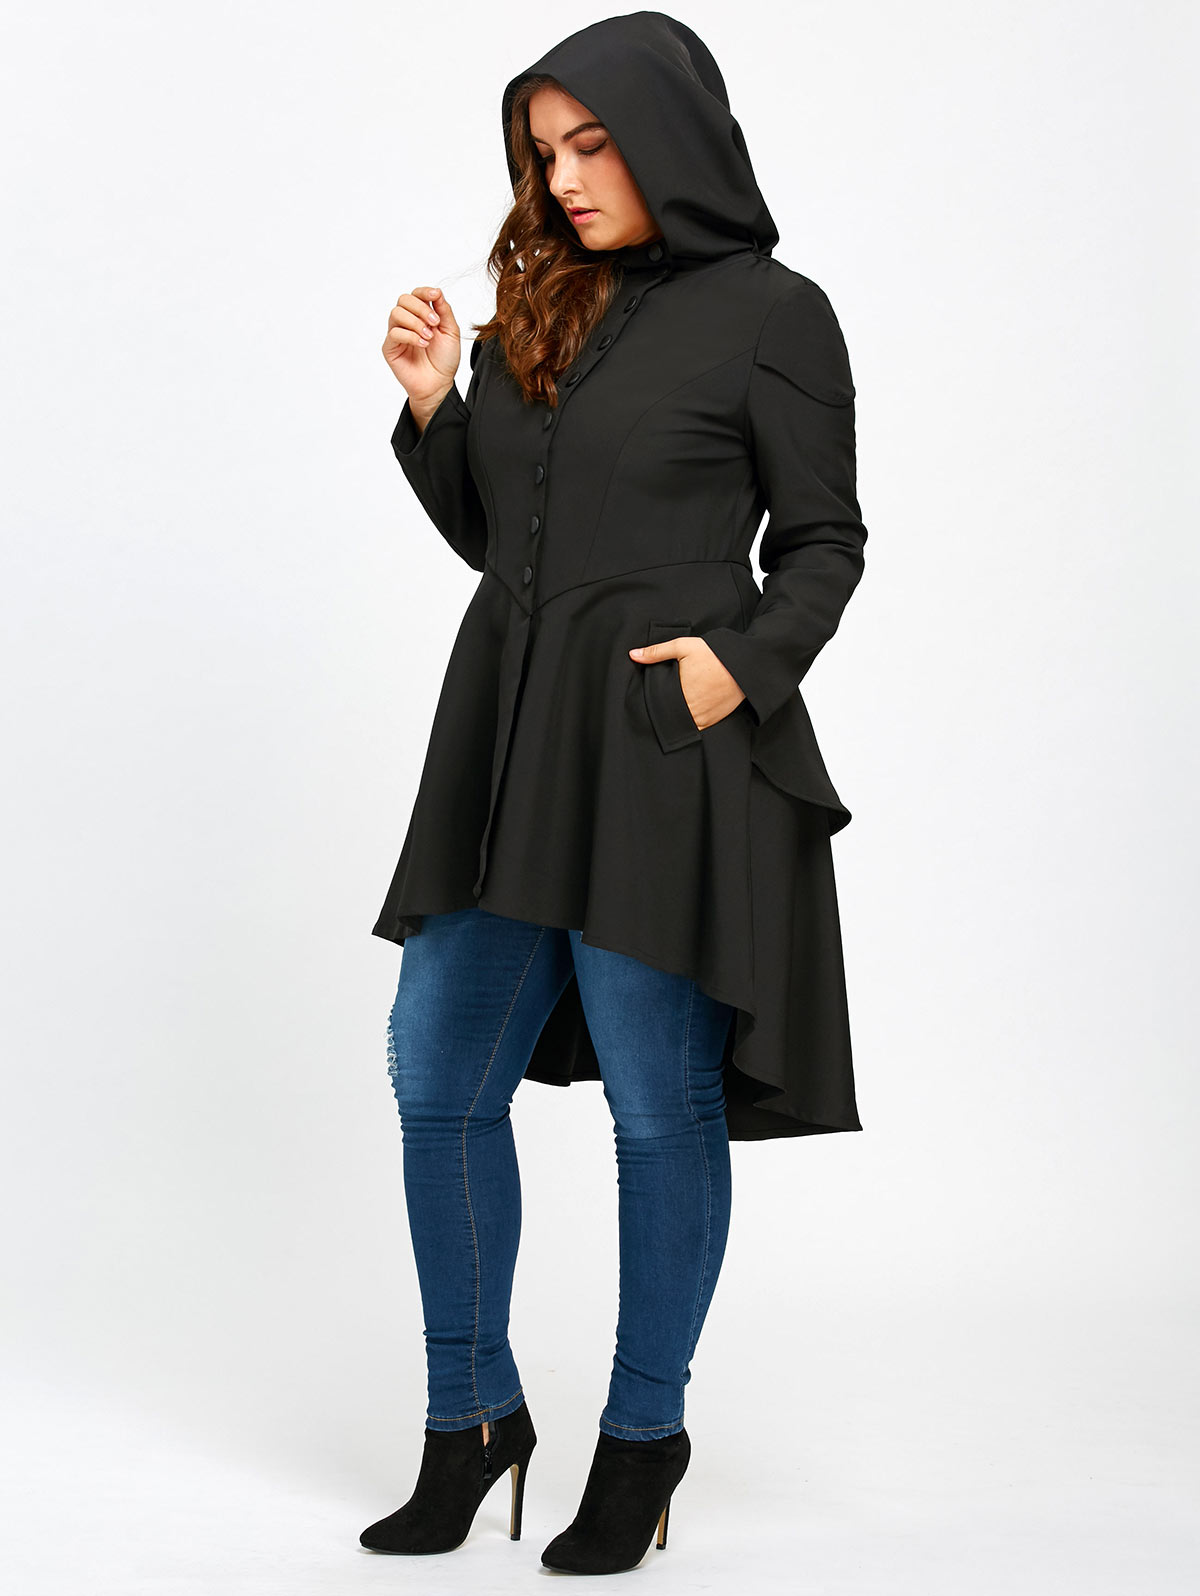 US $24.01 51% OFF Wipalo Trendy Plus Size Lace Up High Low Hooded Coat  Female Halloween Outwear Autumn Coat Women Layered Gothic High Waist  Coats-in ...